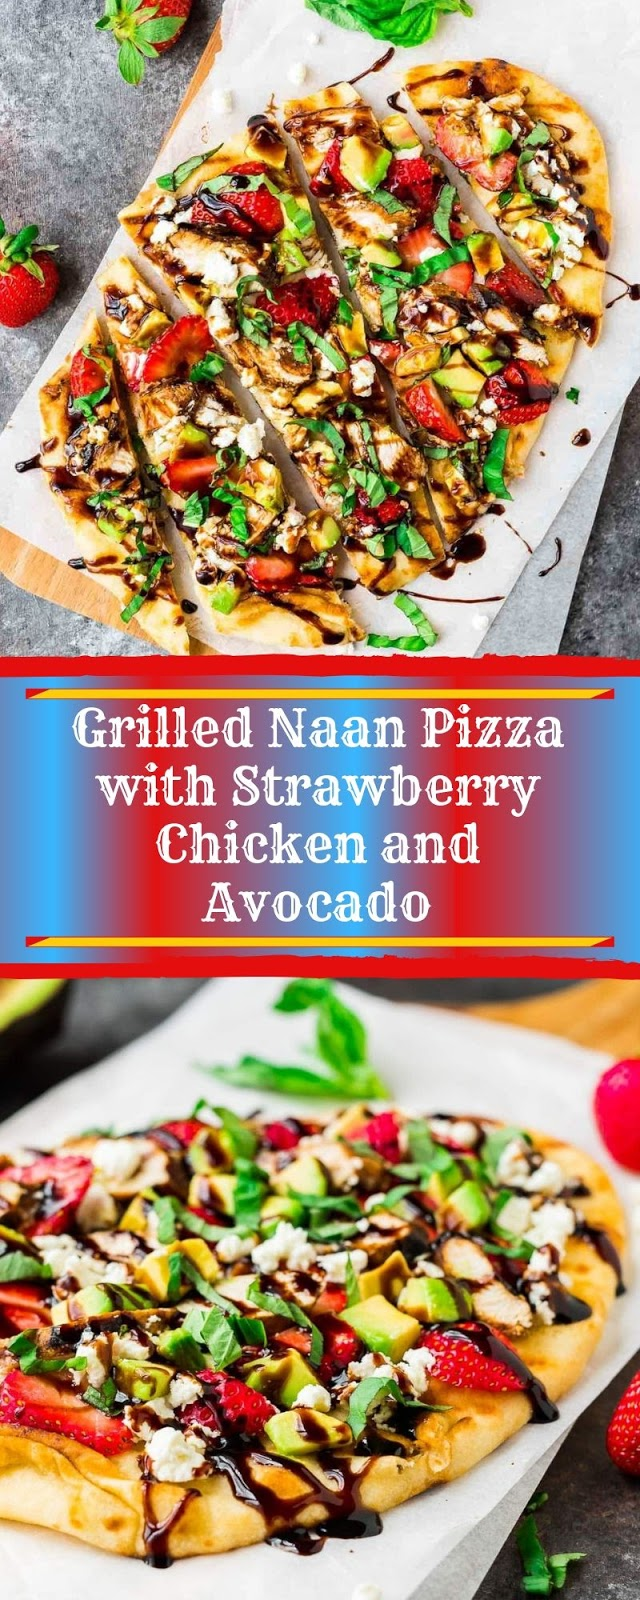 Grilled Naan Pizza with Strawberry Chicken and Avocado